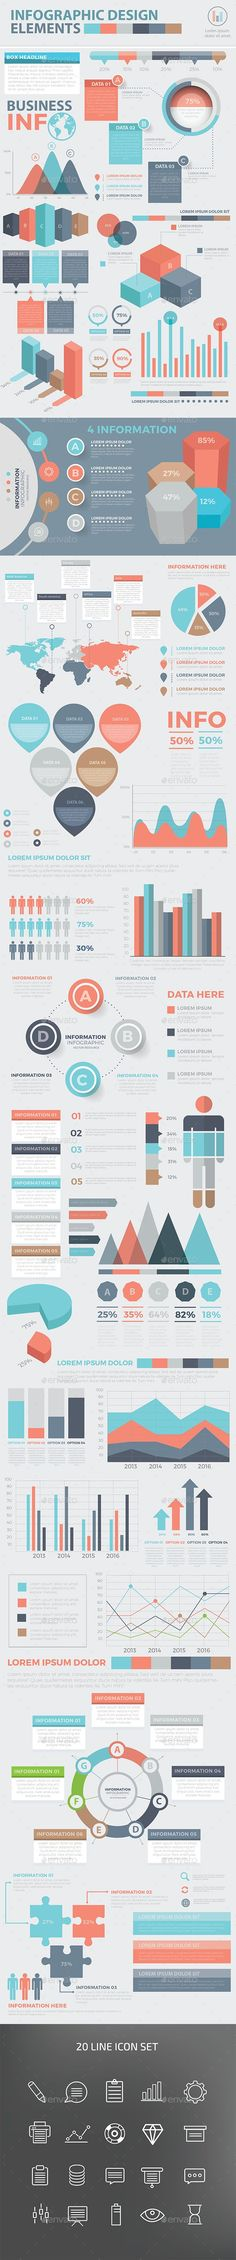 Modern Infographic Elements Design Templates Vector EPS, AI Illustrator. Download here: http://graphicriver.net/item/modern-infographic-elements-design/16723876?ref=ksioks